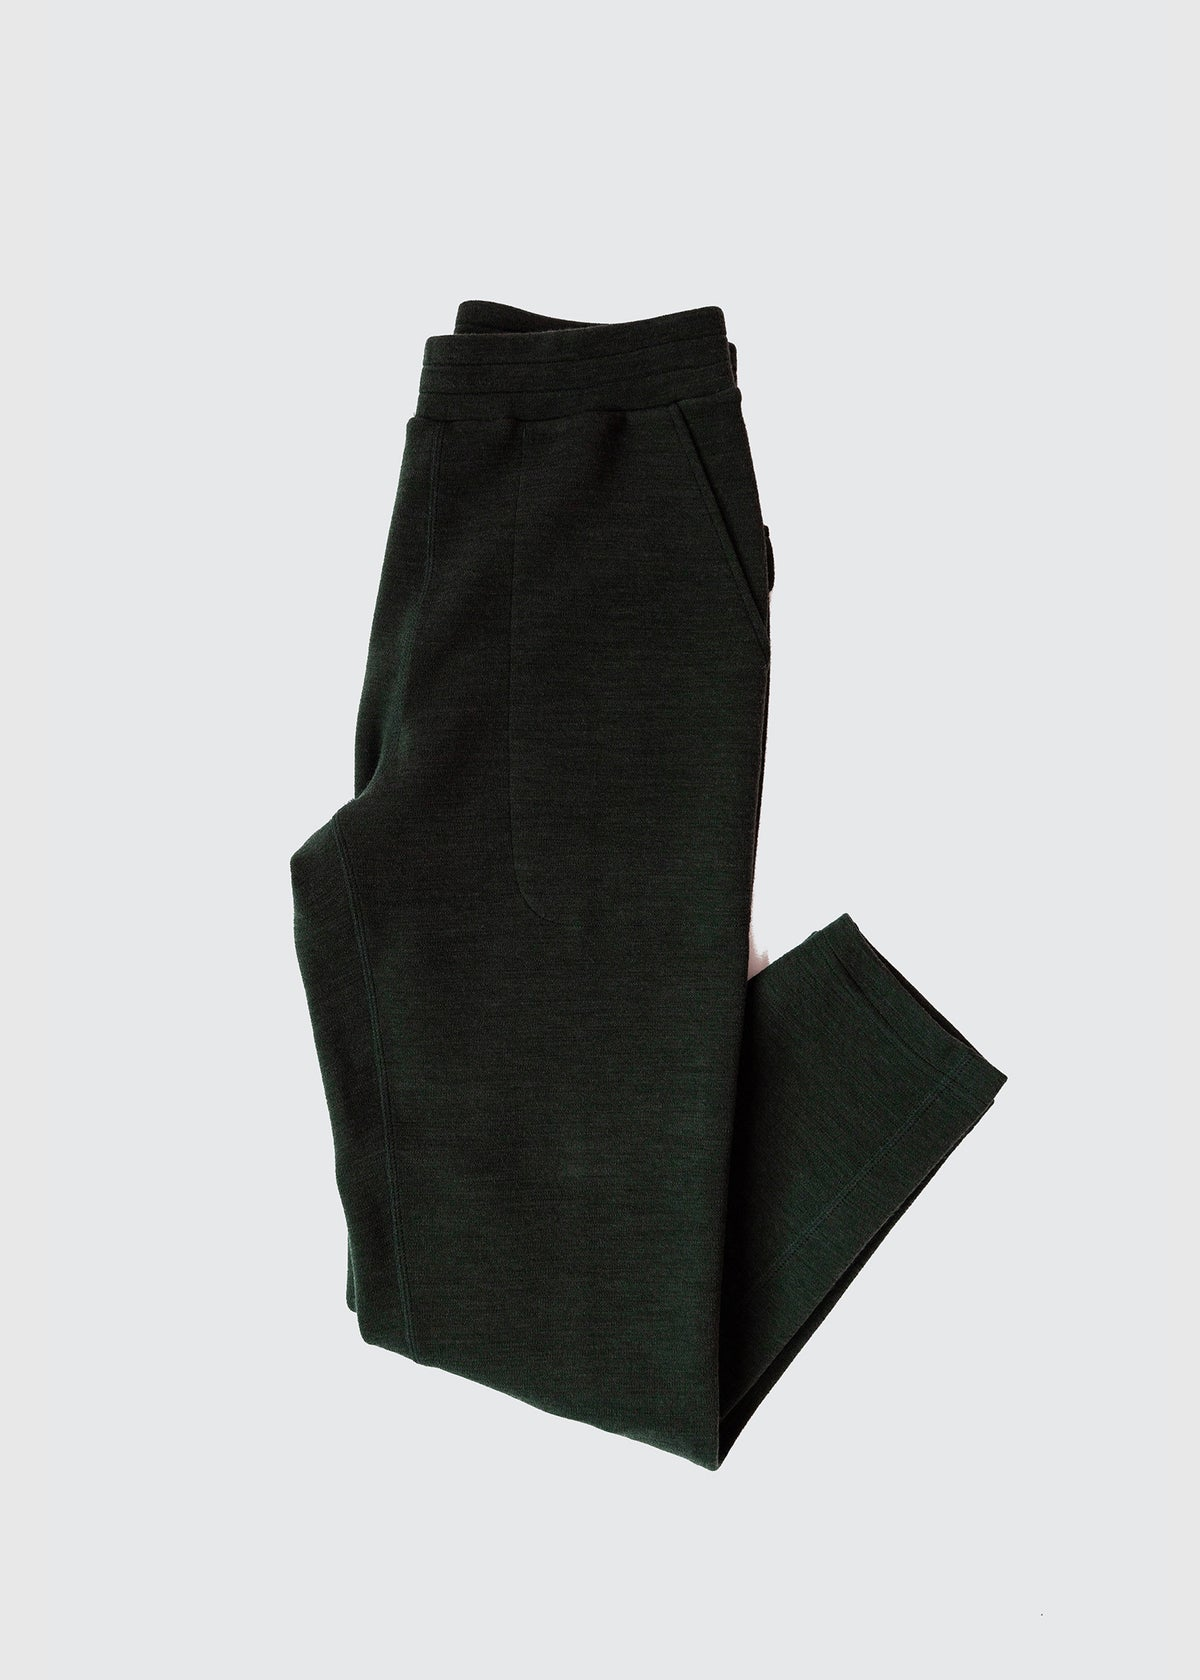 203 - NYLON TROUSER - FOREST